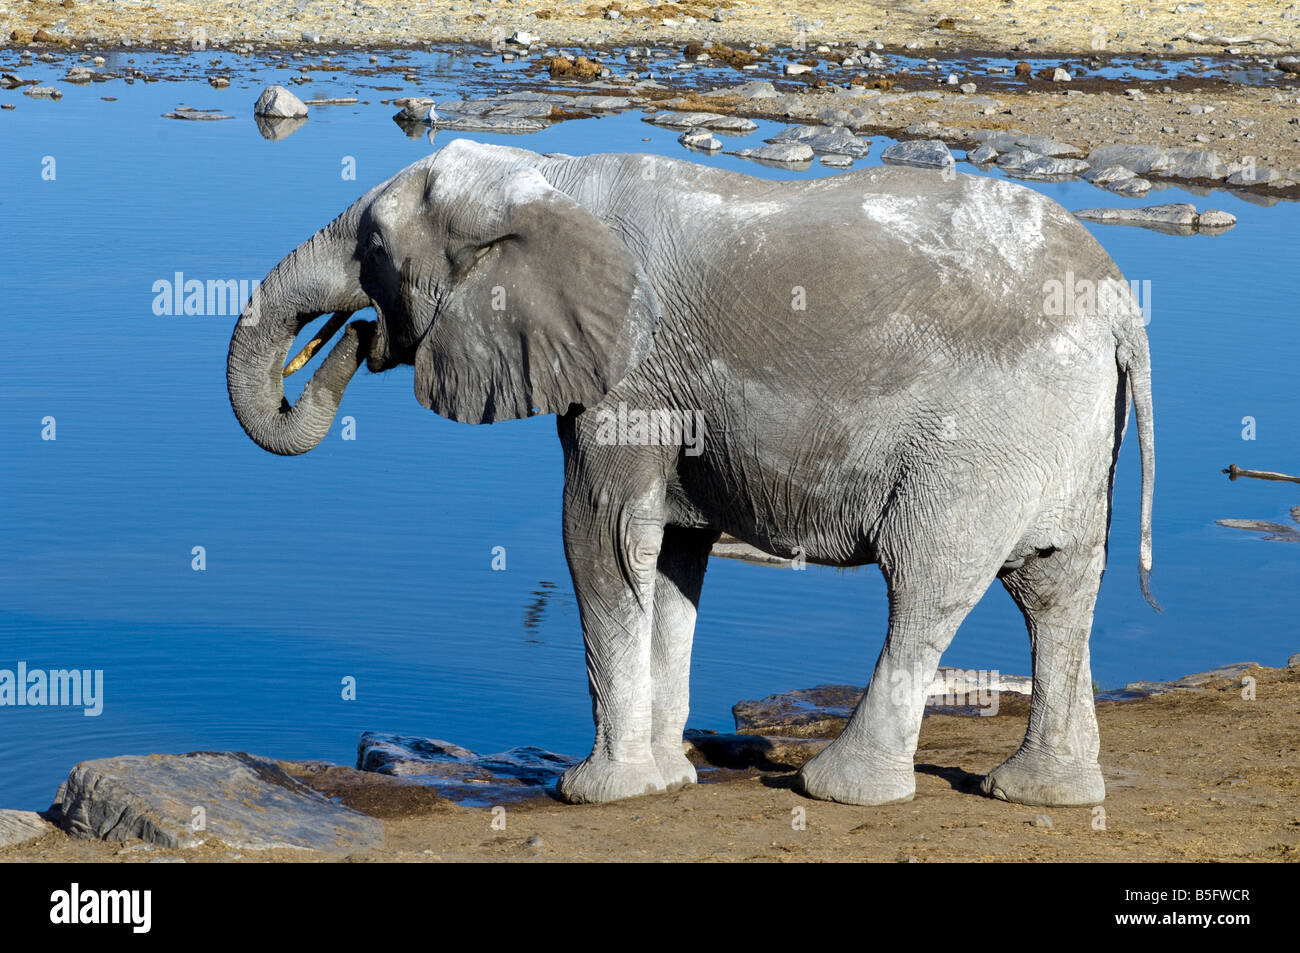 African elephant Loxodonta africana boire au point d'Halali Namibie Etosha National Park Photo Stock